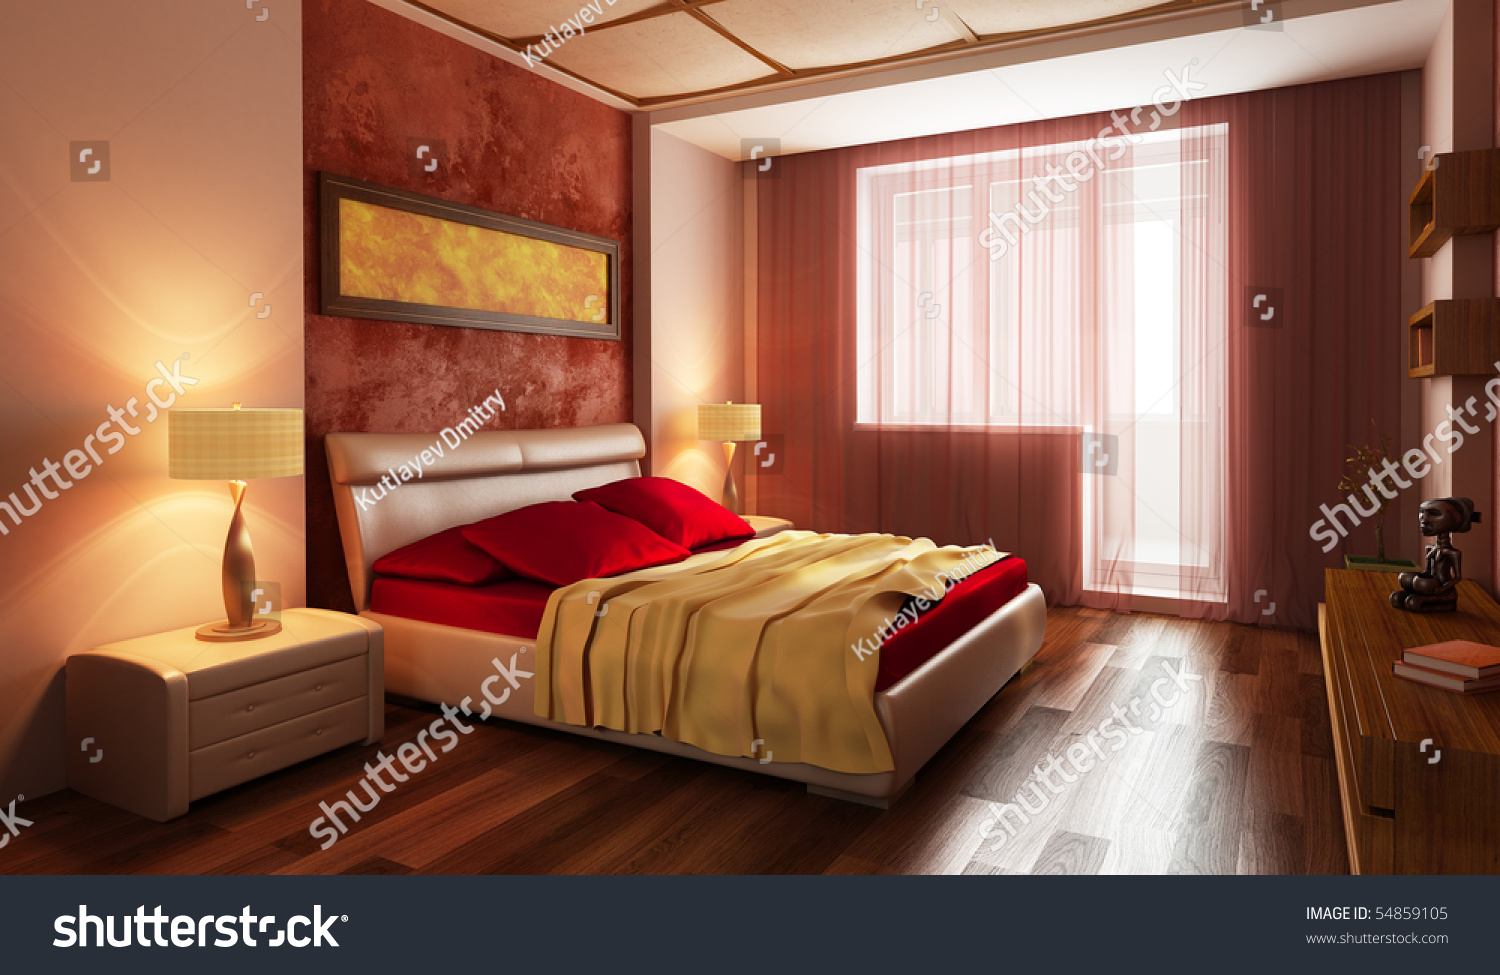 Modern Style Bedrooms Modern Style Bedroom Interior 3d Rendering Stock Photo 54859105